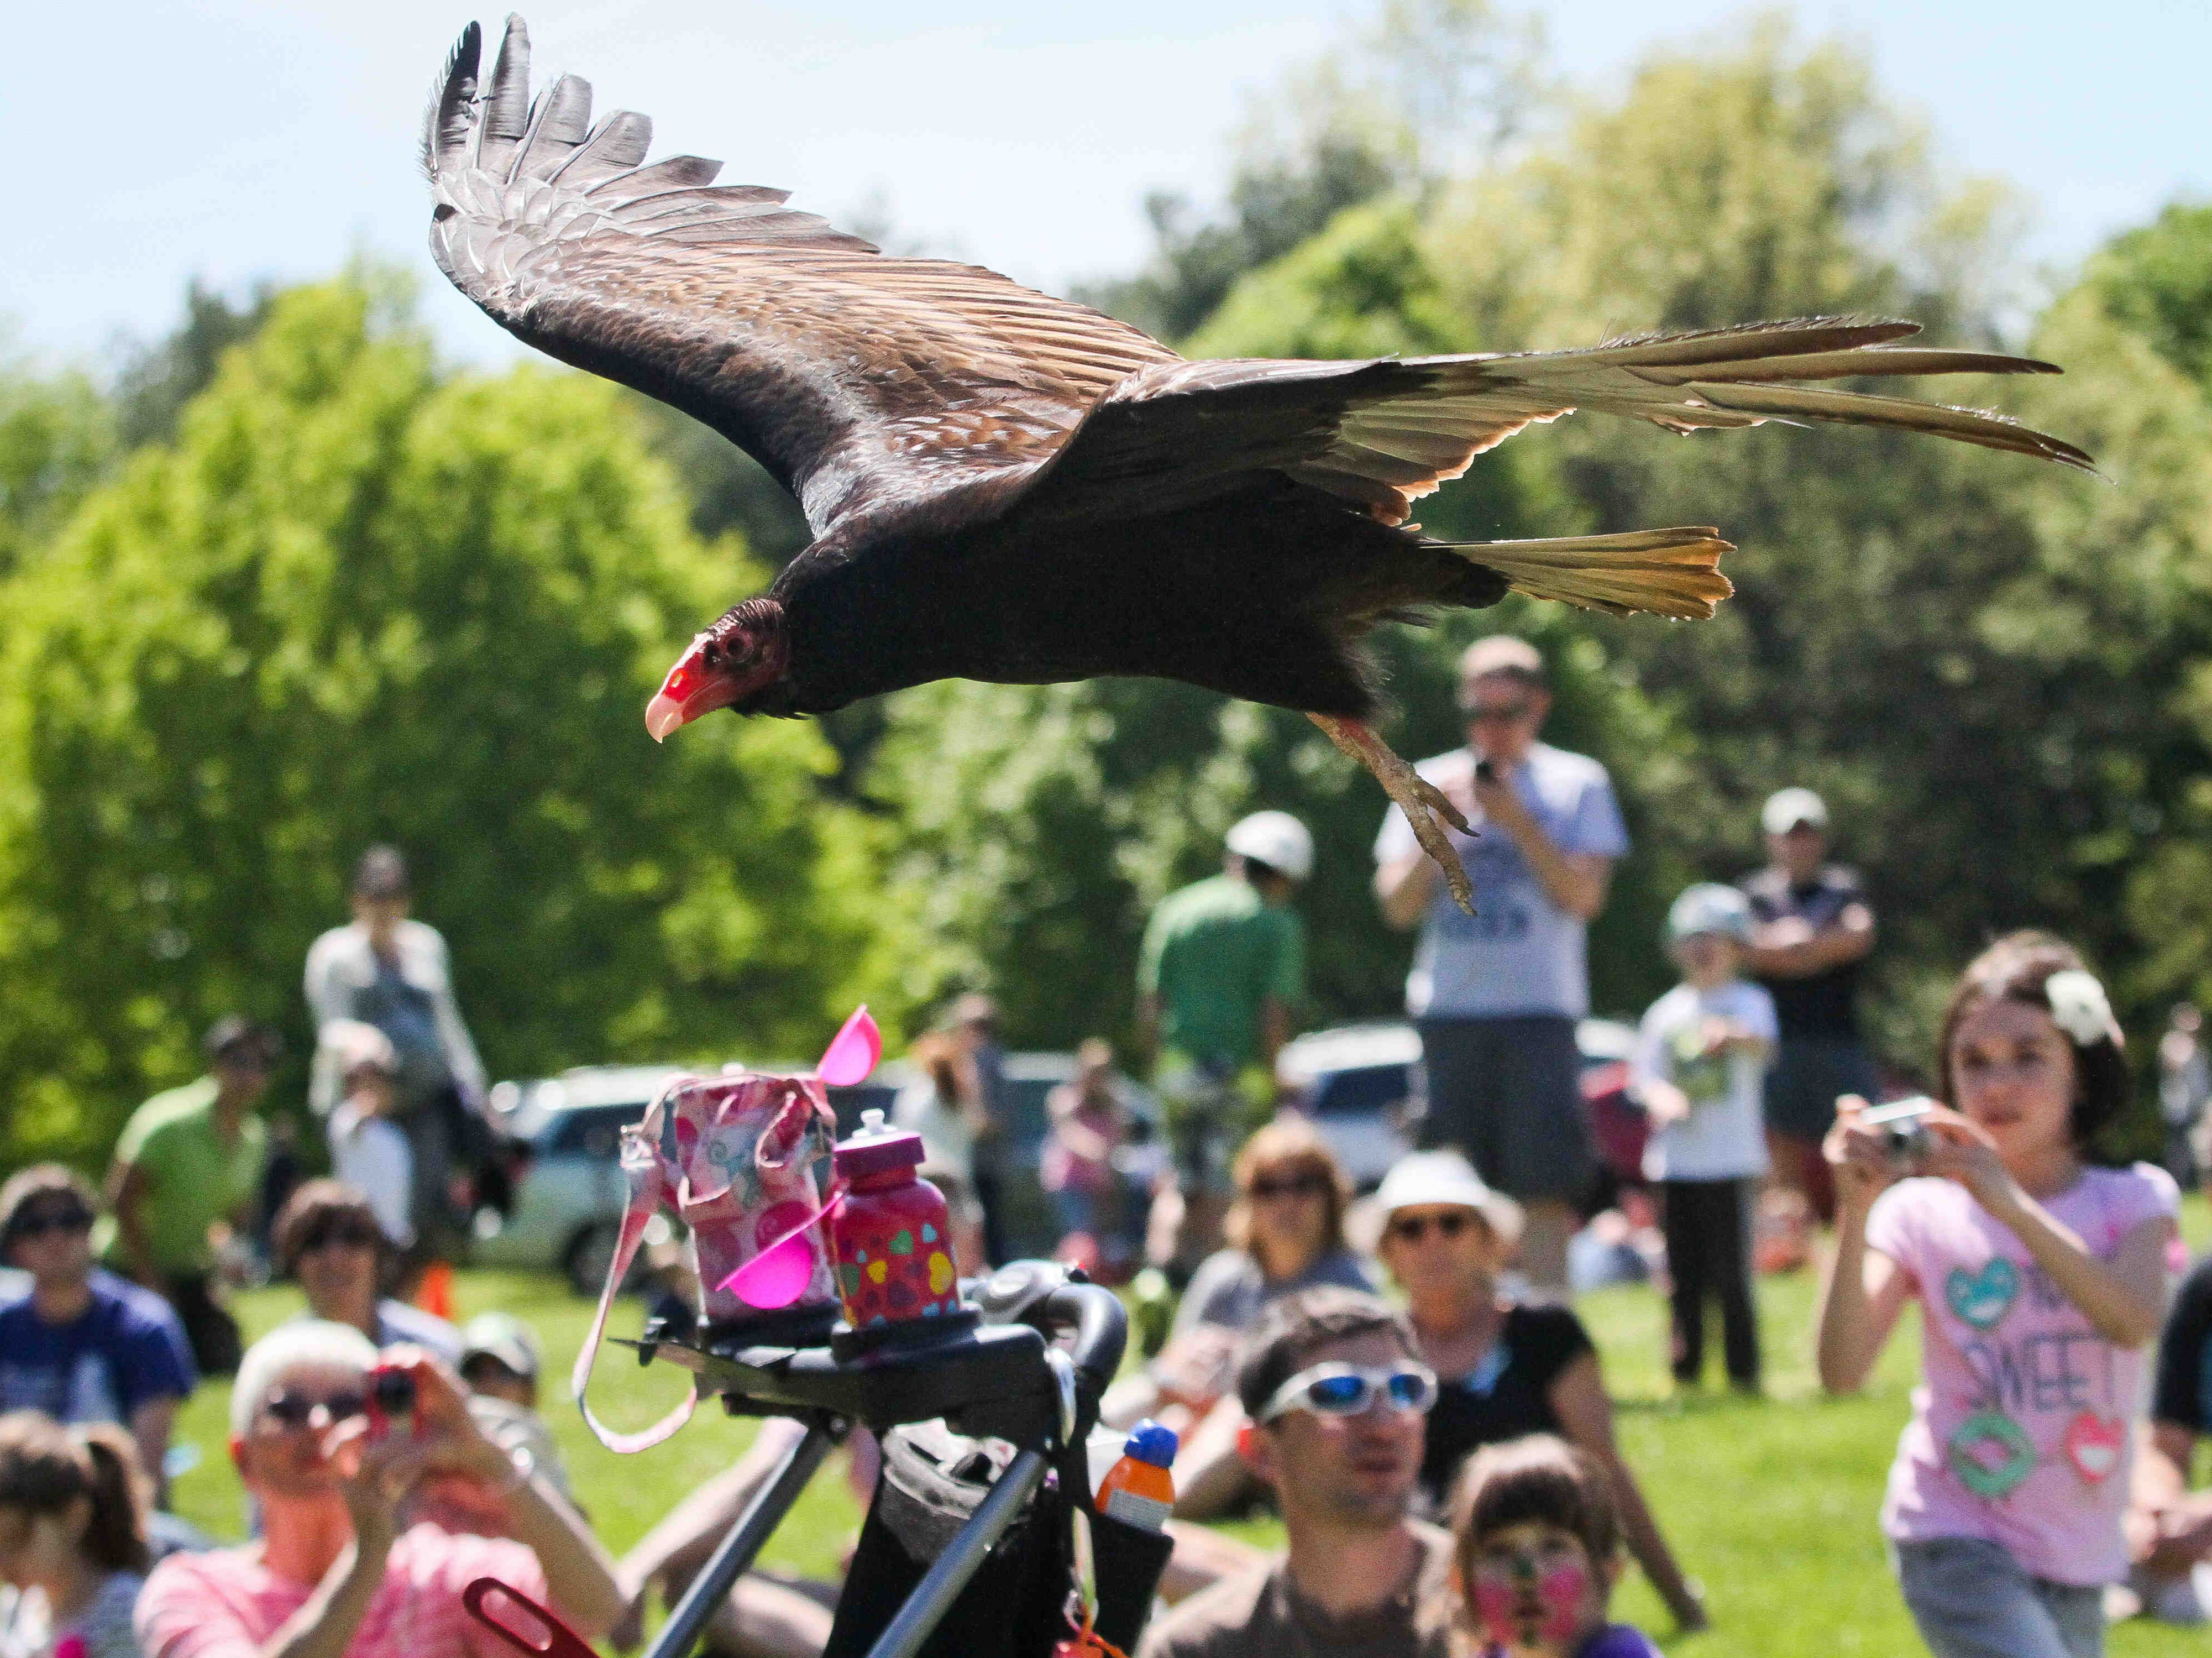 Delaware alphabet: V is for vultures. Here, a turkey vulture flies low over a crowd at a White Clay Creek Fest.